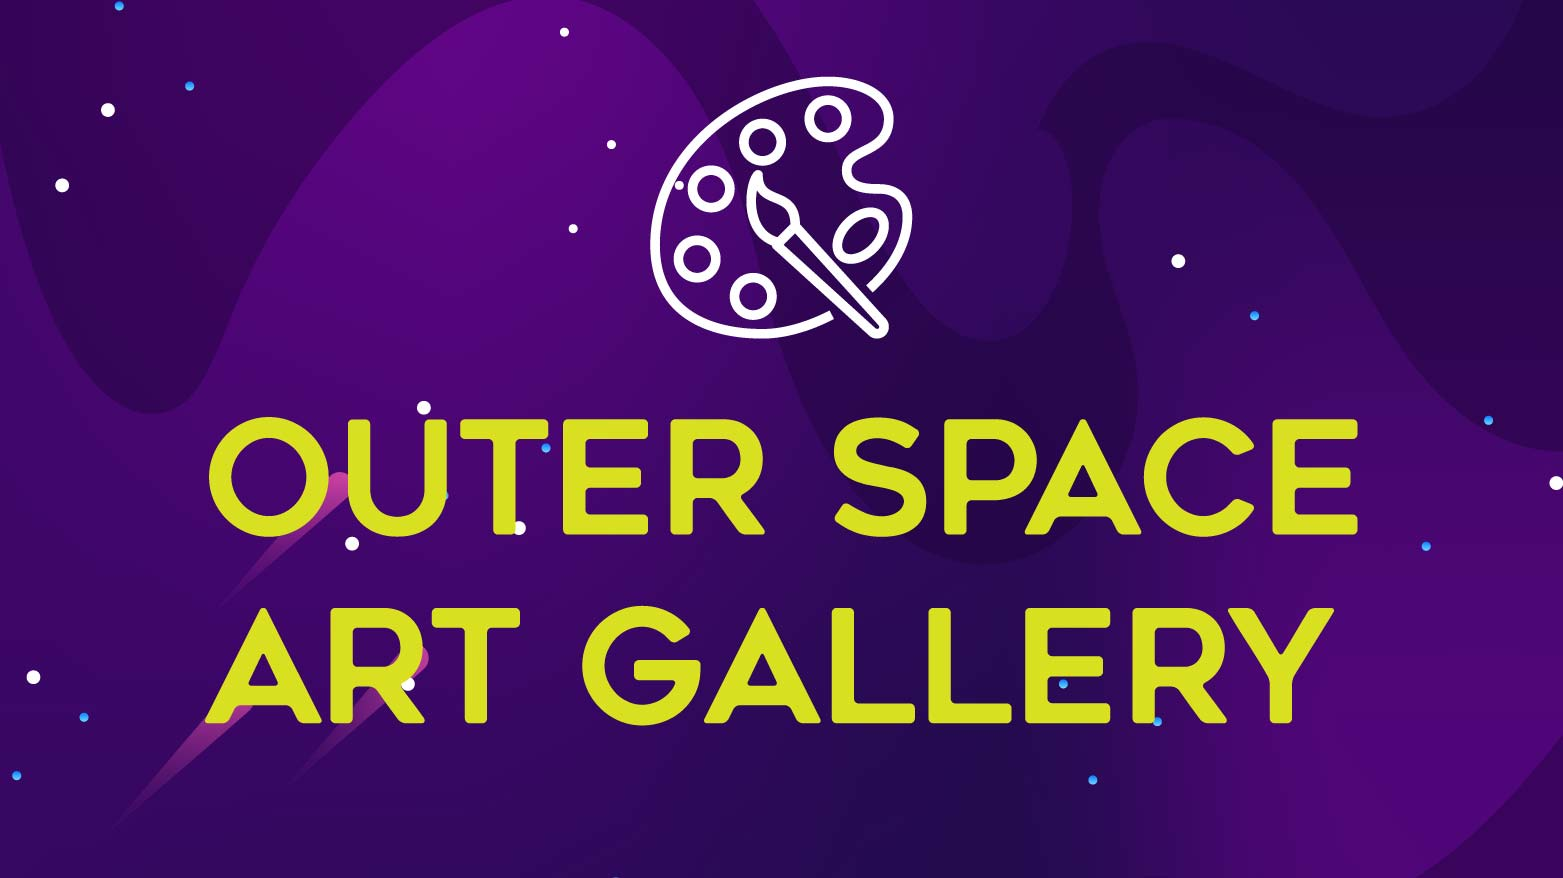 Outer Space Art Gallery - HAAF - CANCELLED